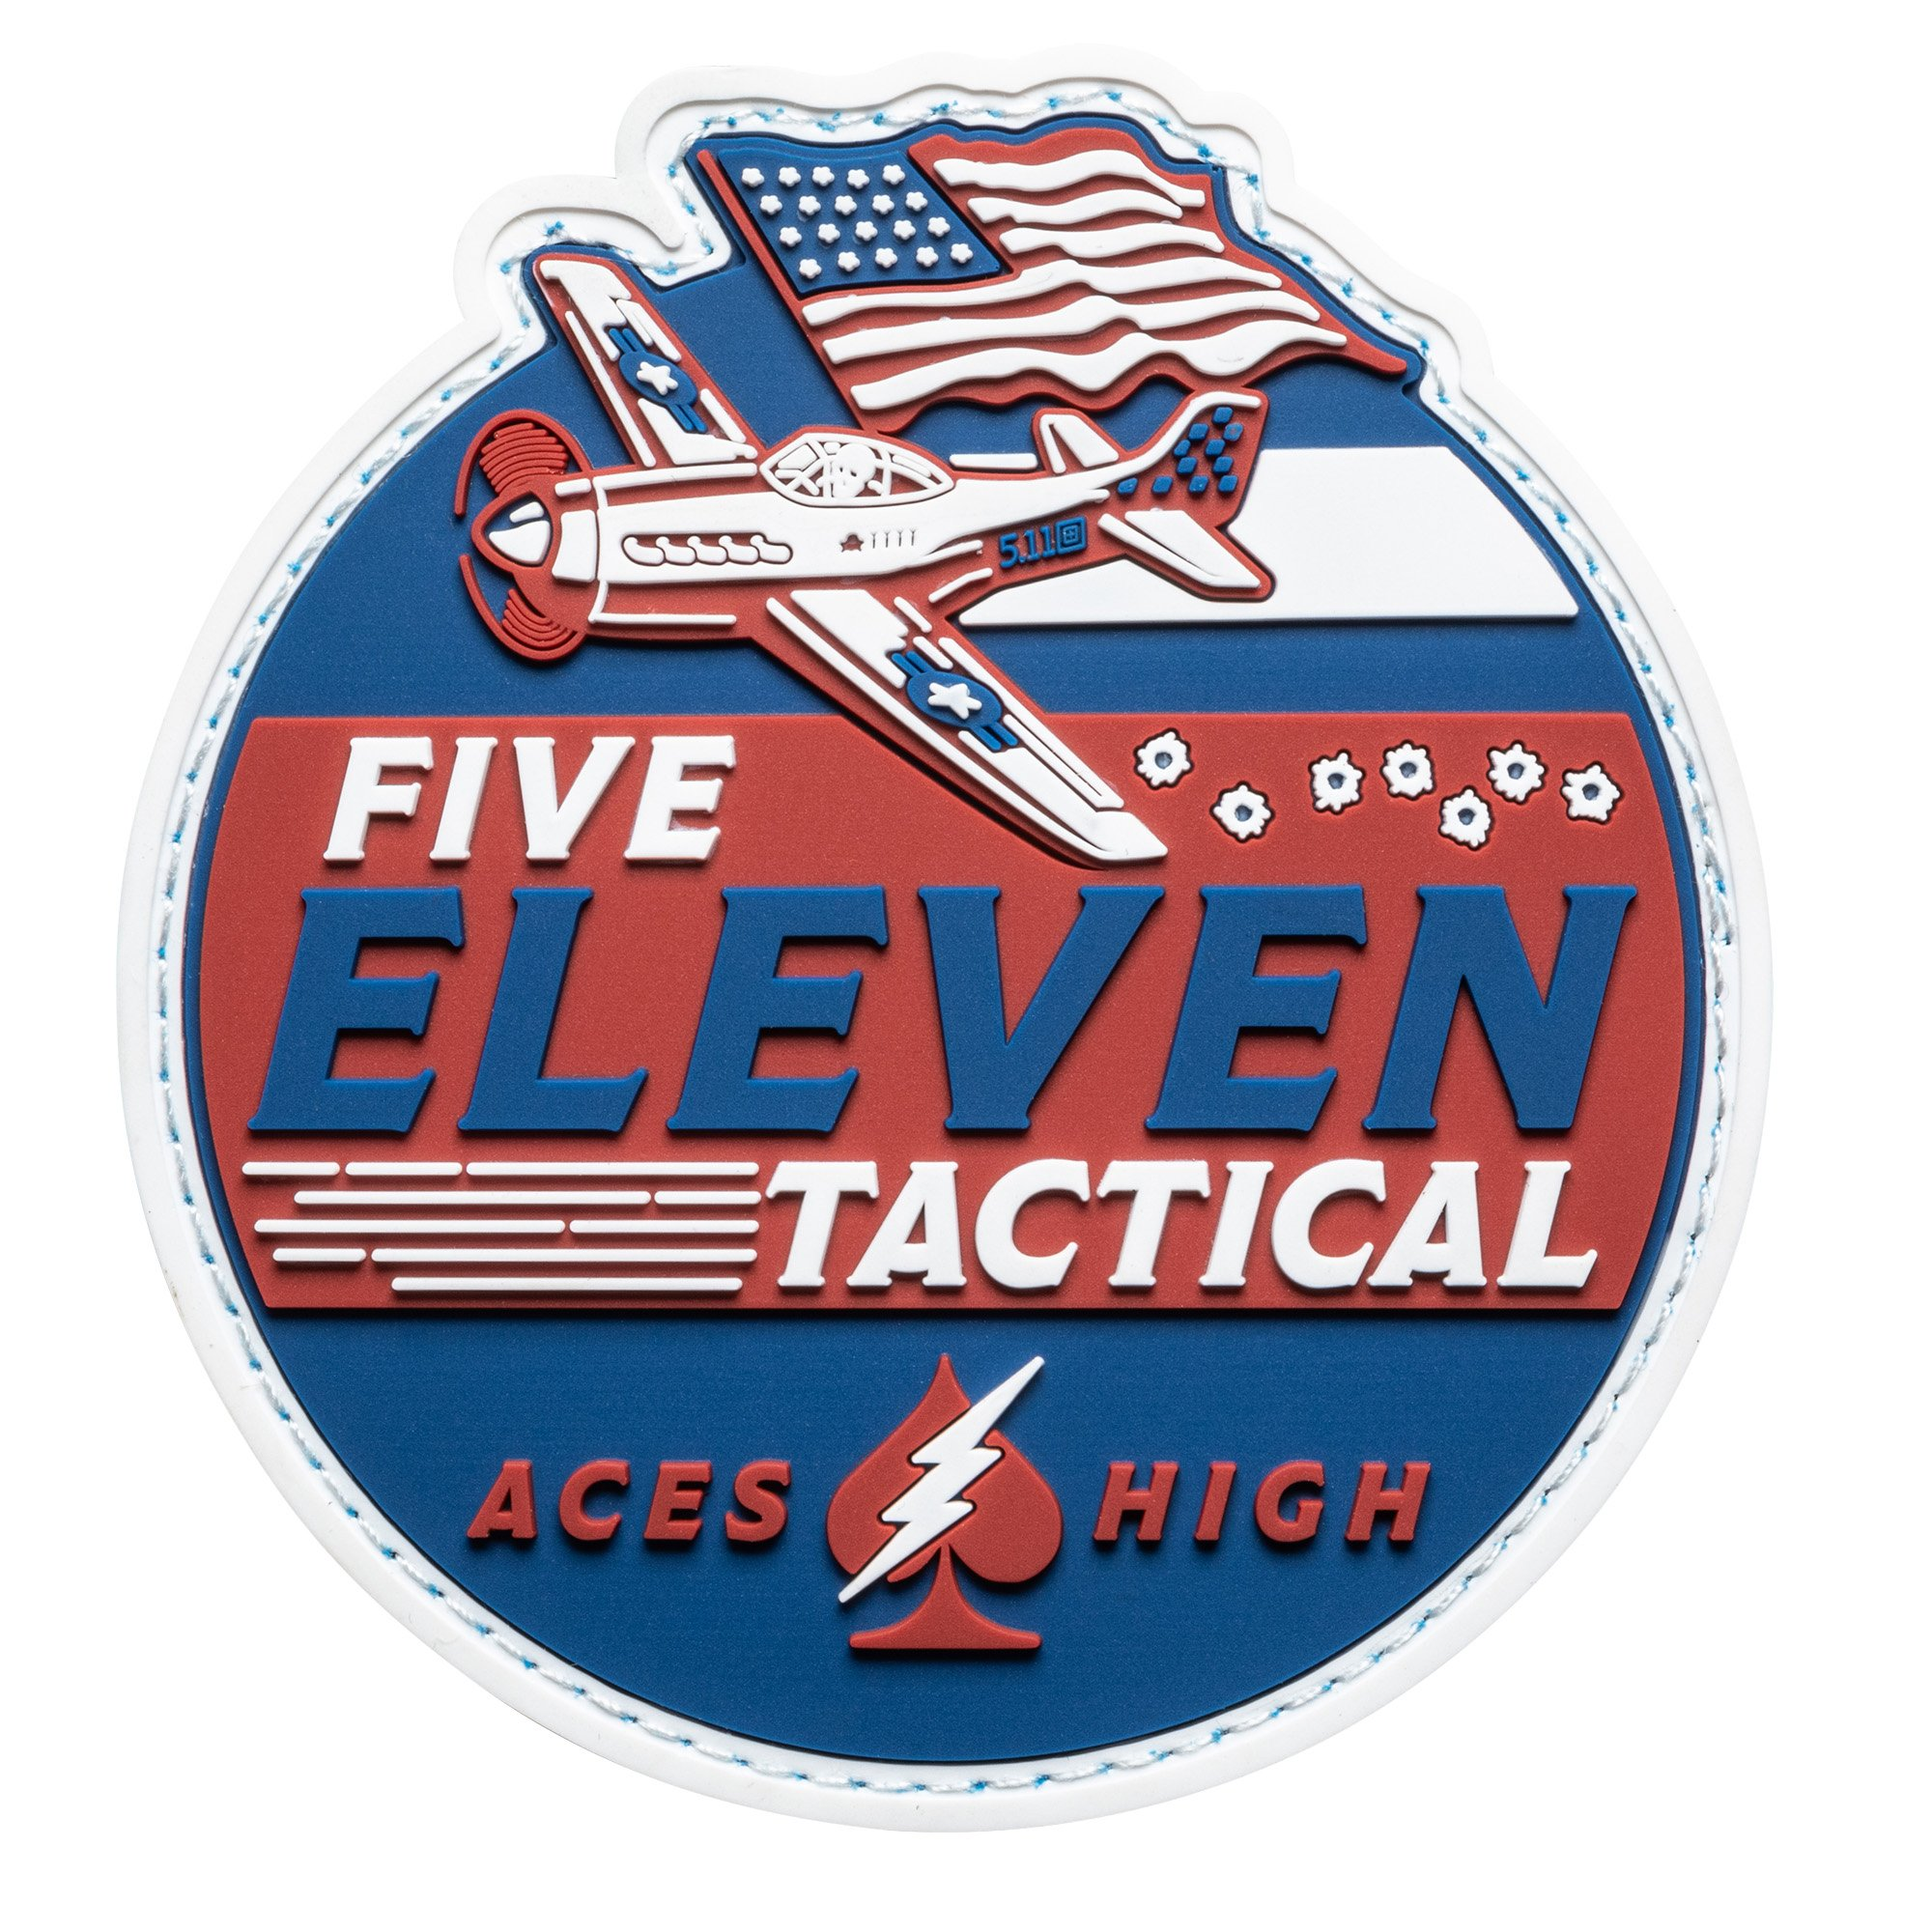 ACES HIGH PATCH